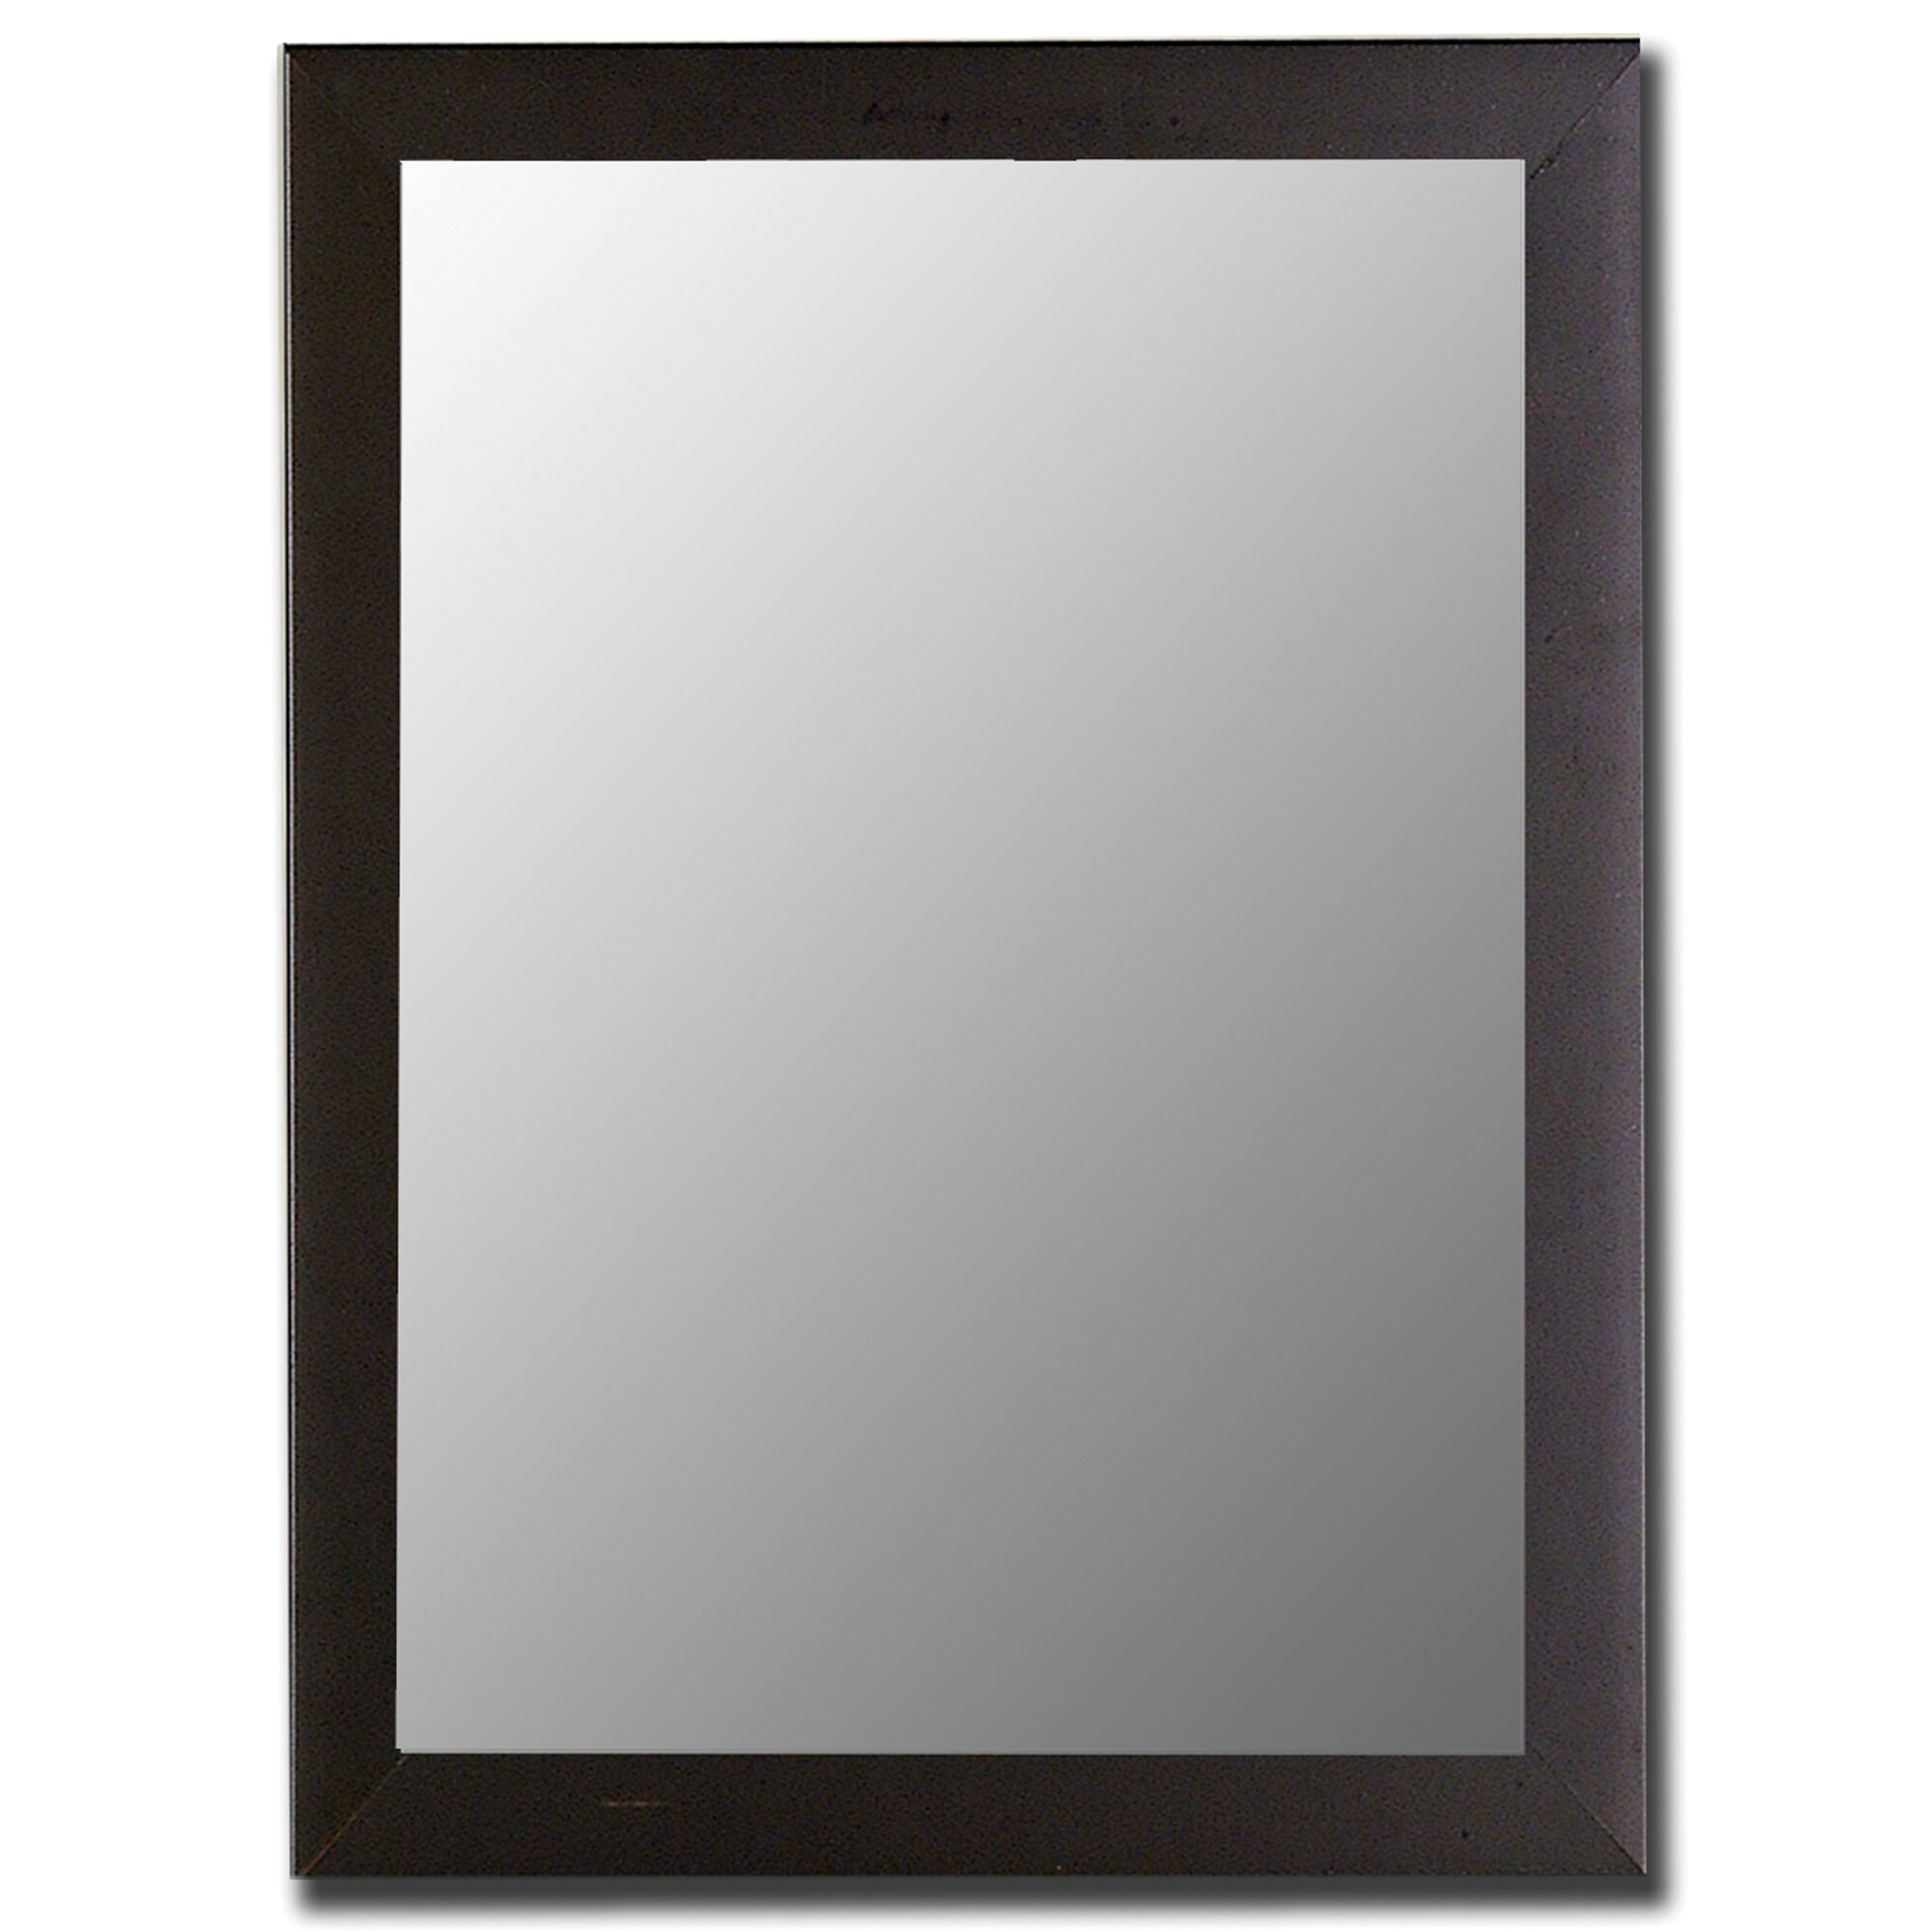 Hitchcock butterfield company modern satin black wall for Modern wall mirror